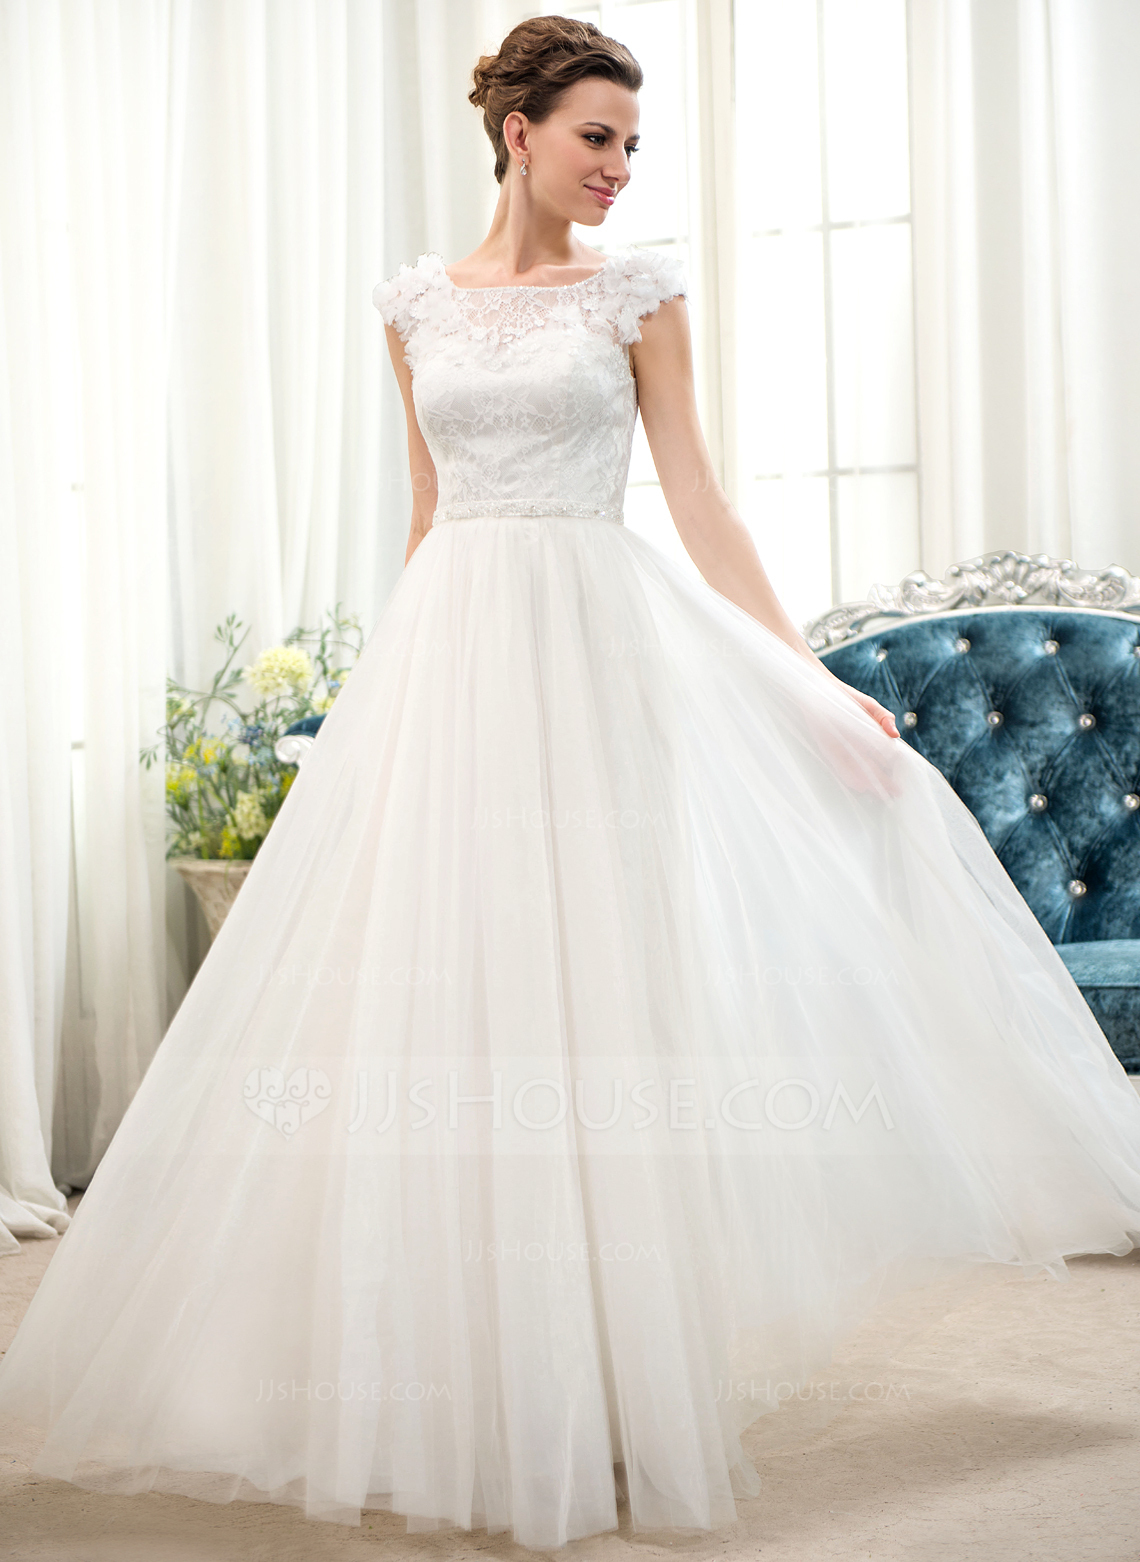 A Line Princess Scoop Neck Floor Length Tulle Lace Wedding Dress With Beading Flower S Sequins g jjshouse wedding dress Home Wedding Dresses Loading zoom